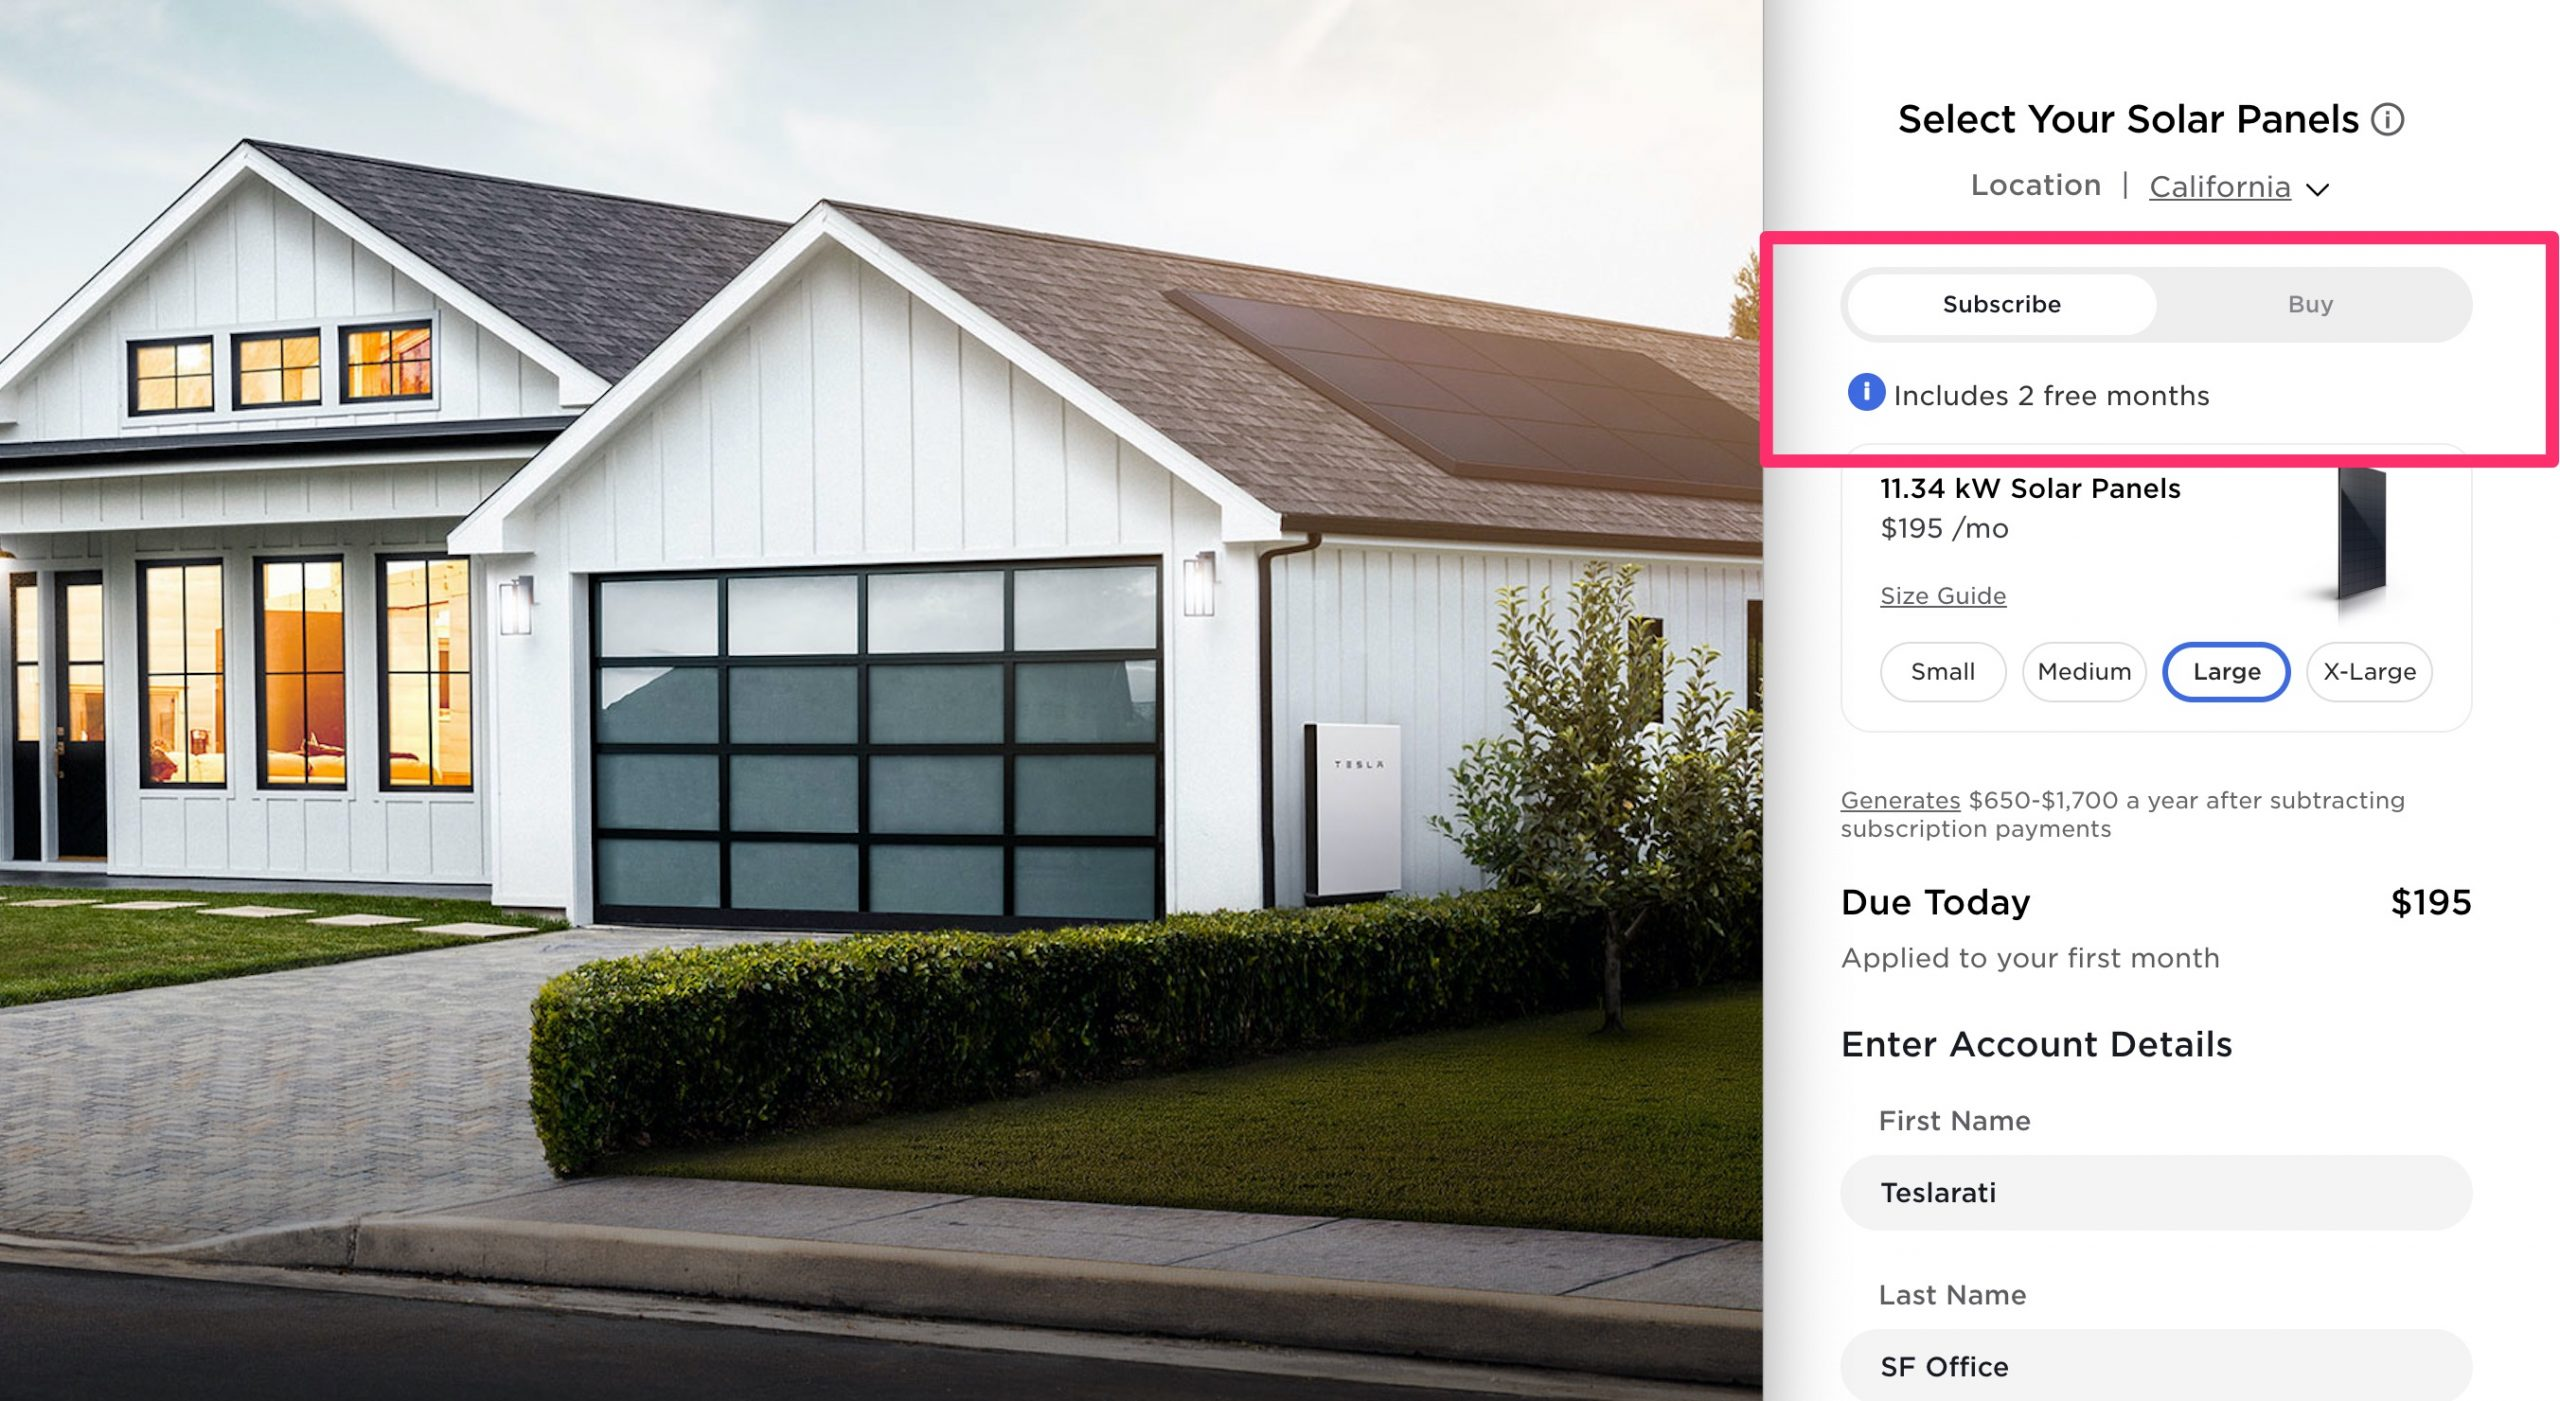 Tesla Solar Panel Subscription